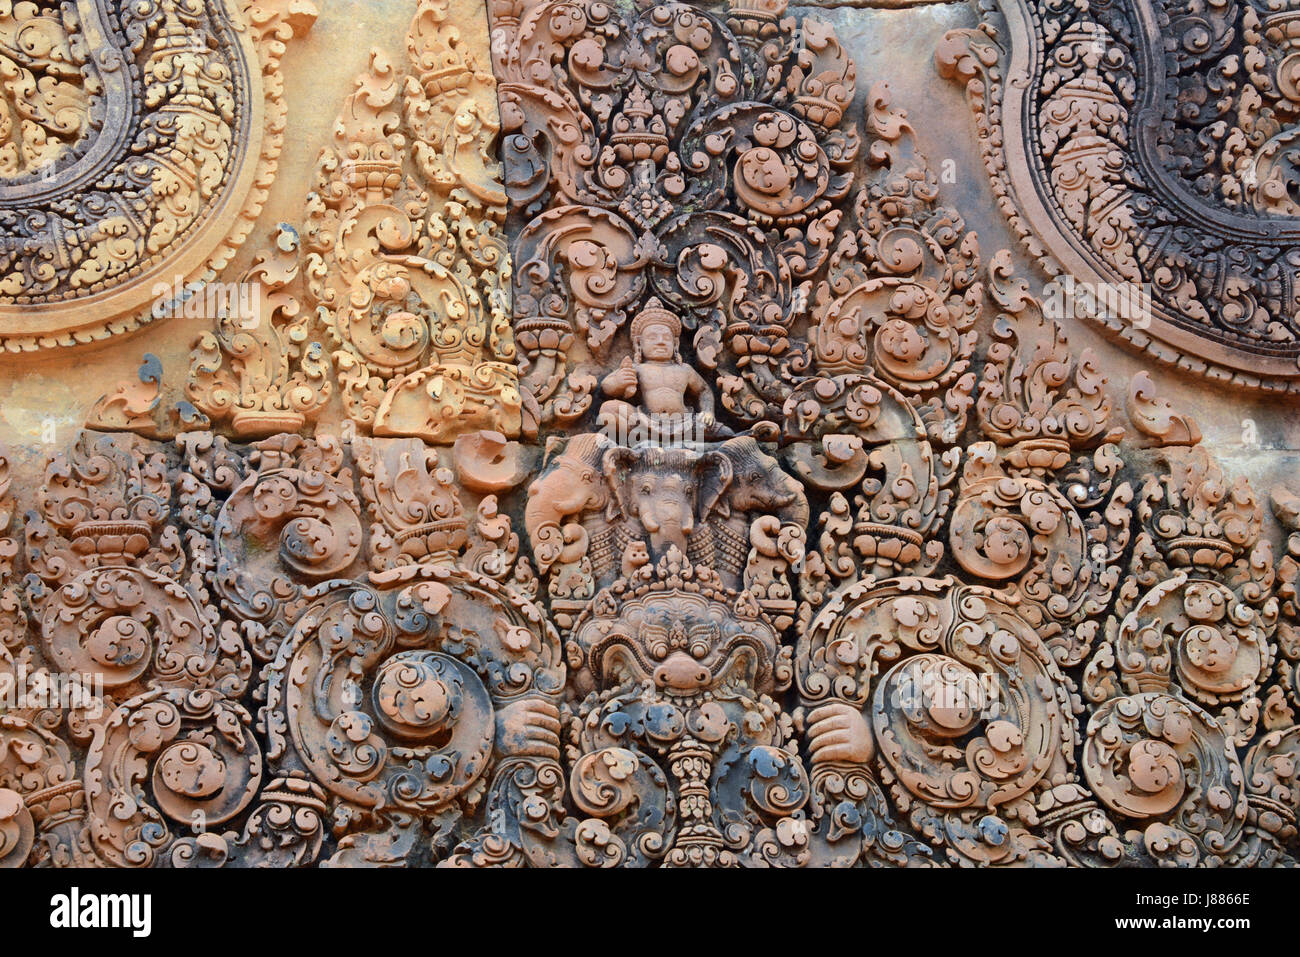 Banteay Srey Temple, Siem Reap Province, Cambodia - Stock Image